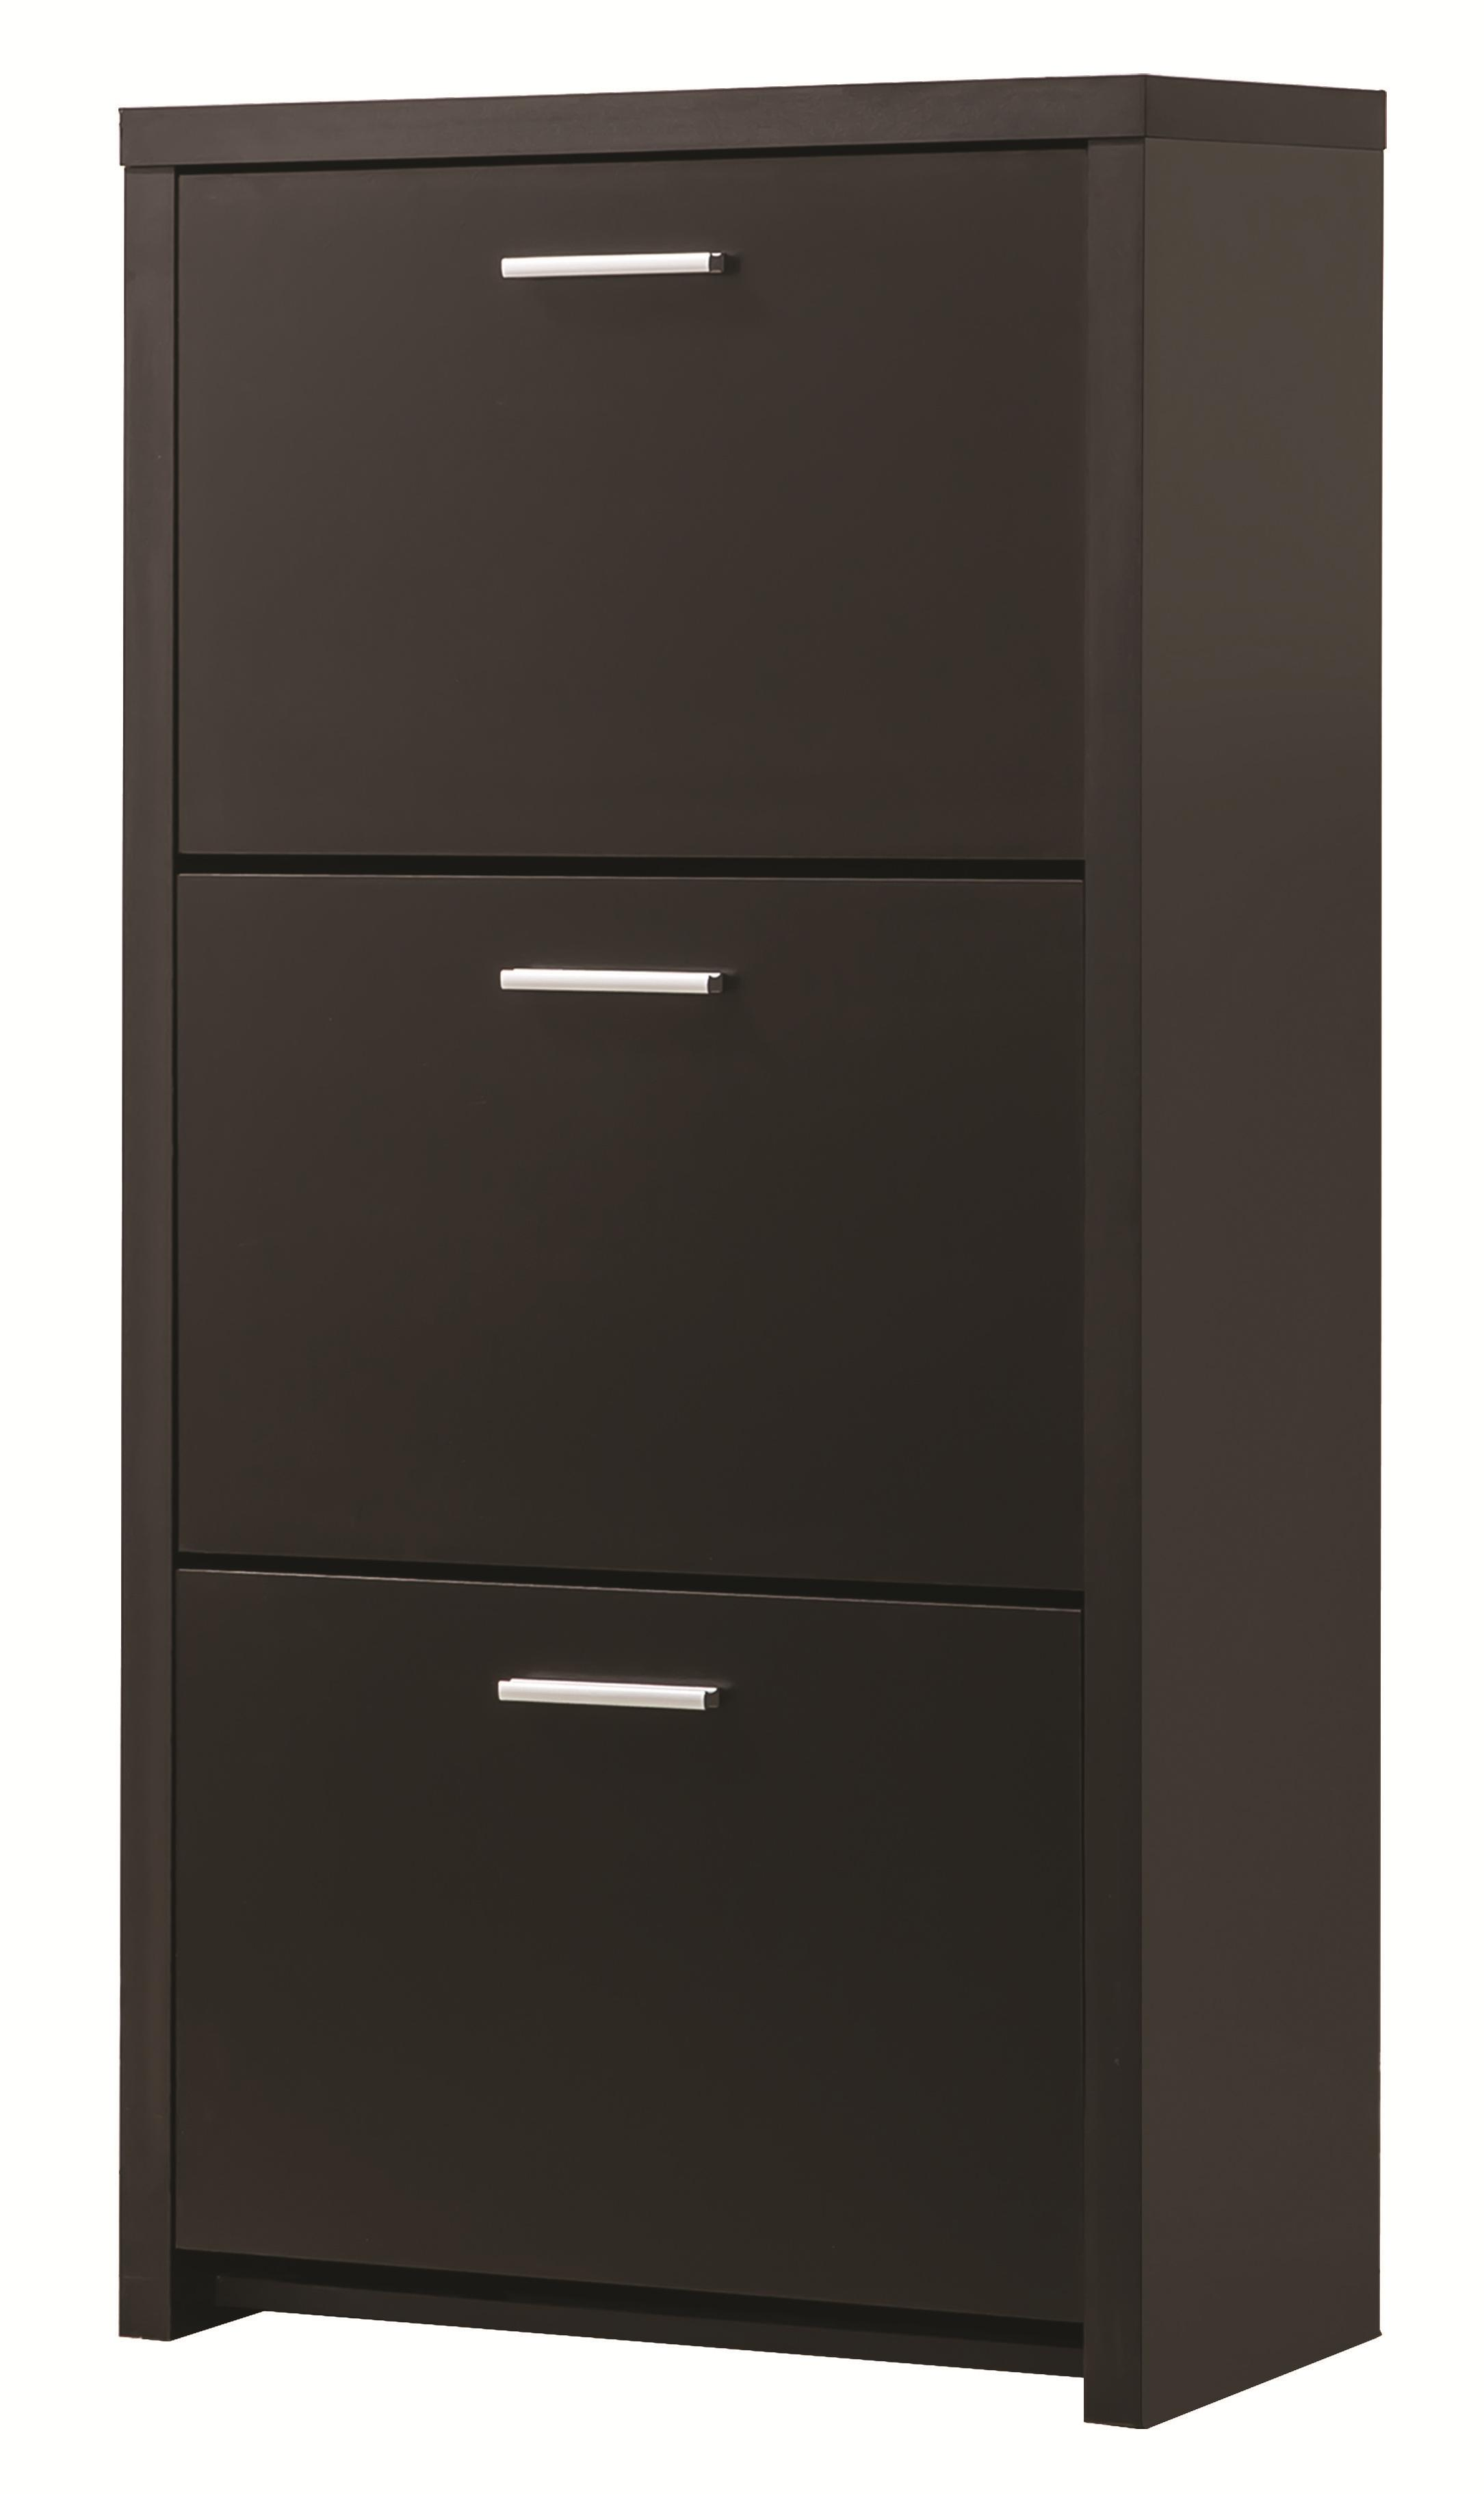 products_coaster_color_accent cabinets_900604-b0